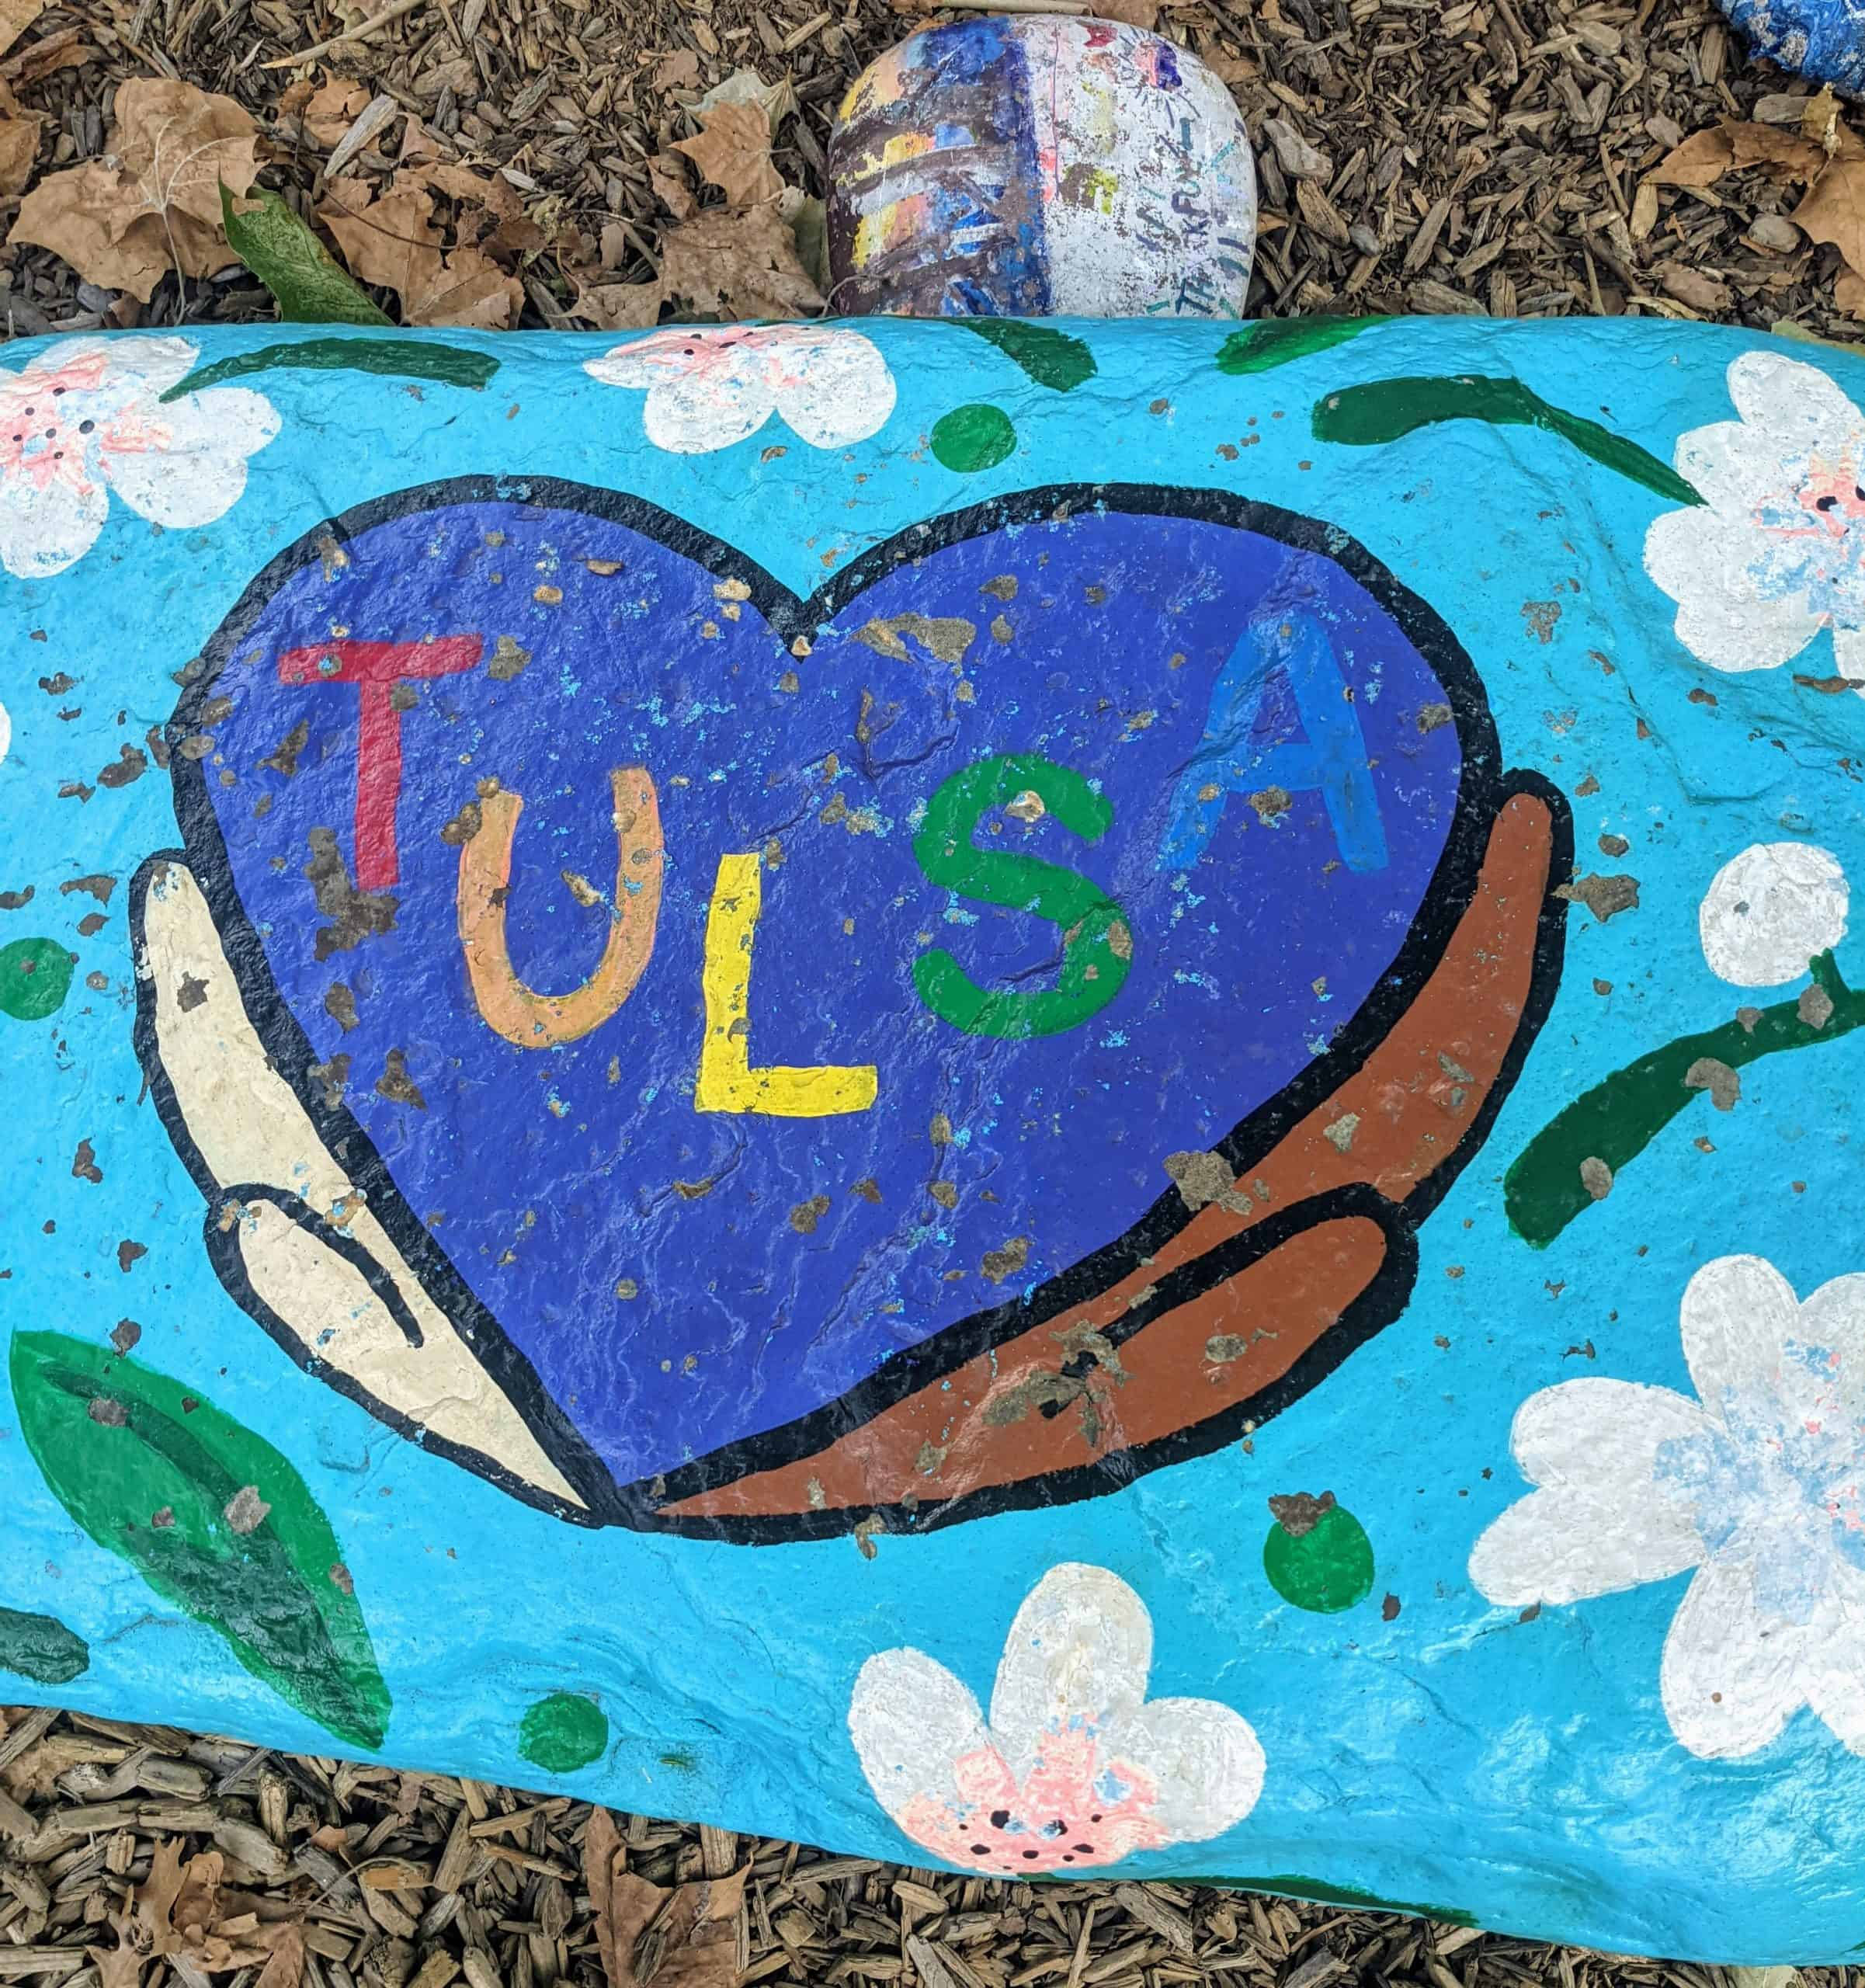 Family Trip: Fun Things to Do in Tulsa with Kids